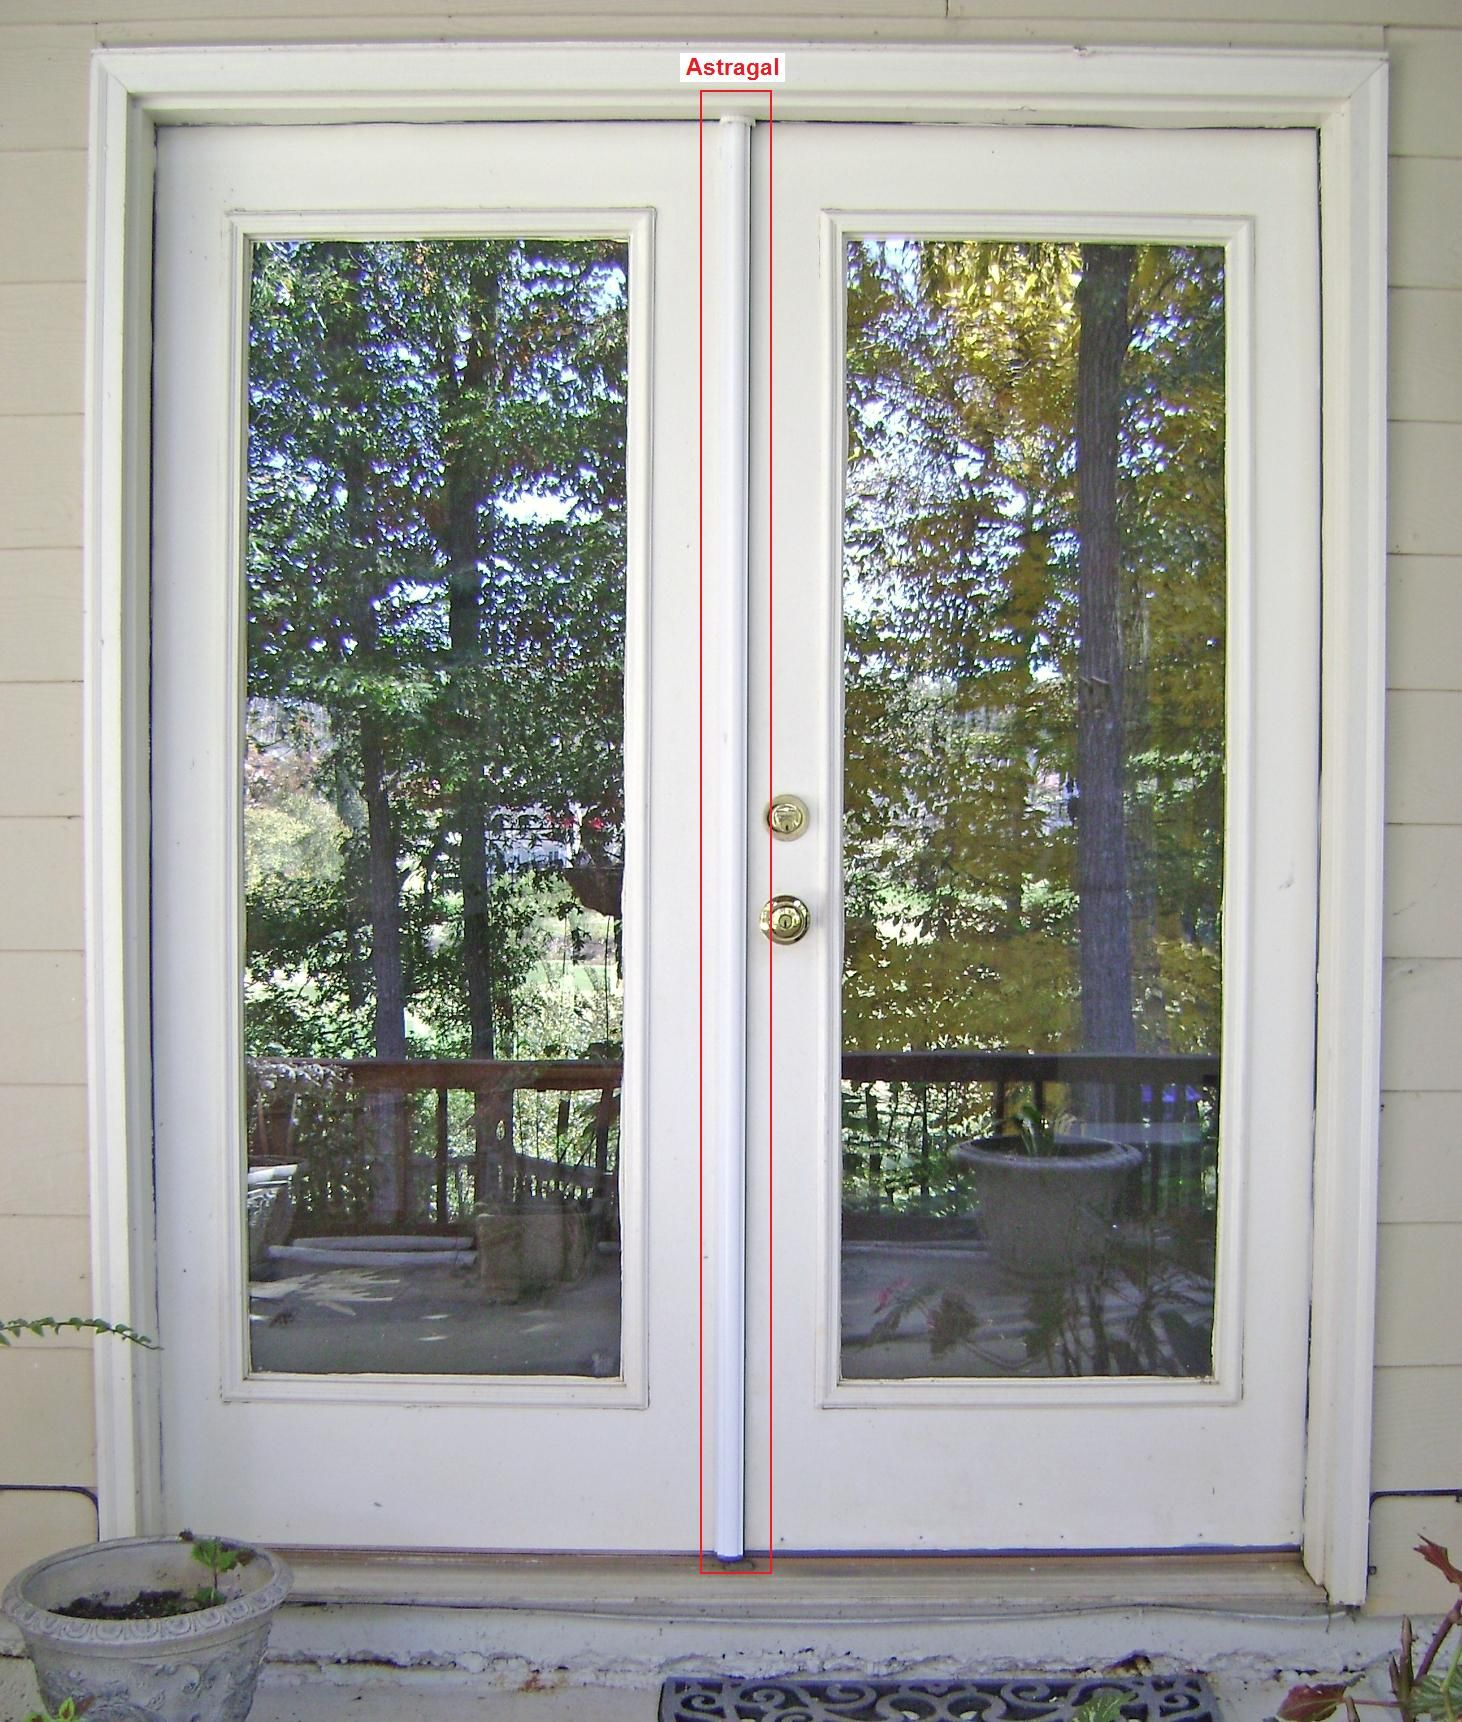 Simple french door, no panes, hopefully smoked or